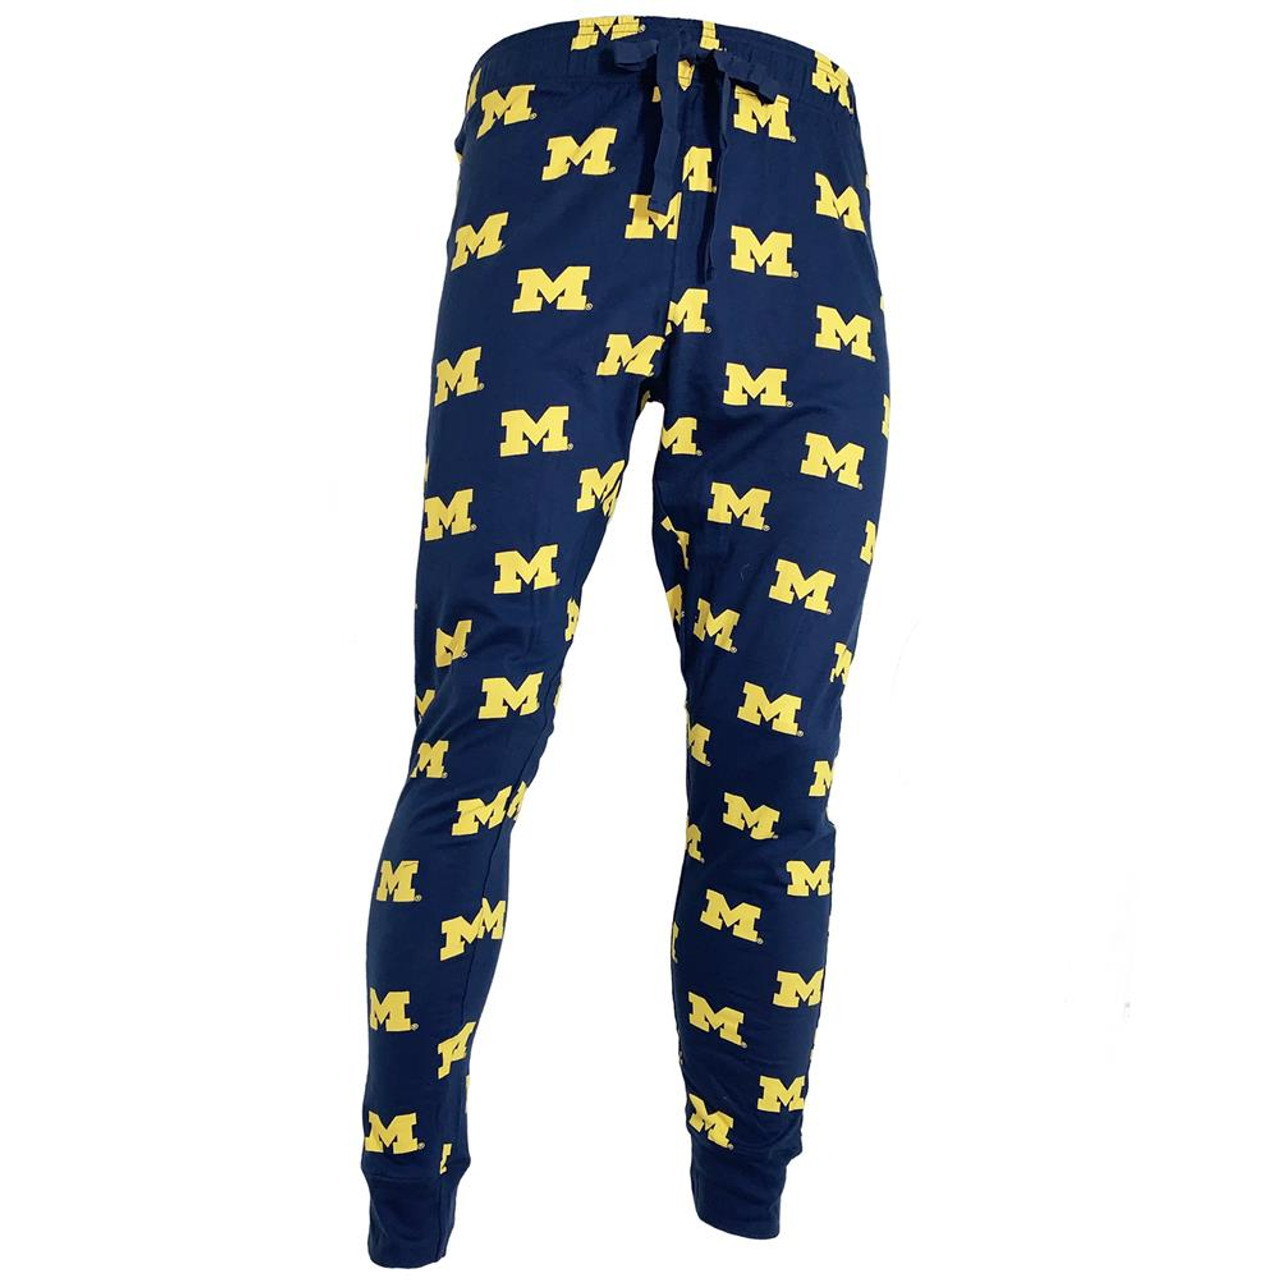 Mens University of Iowa Hawkeyes Matching PJs Family Matching Pajamas